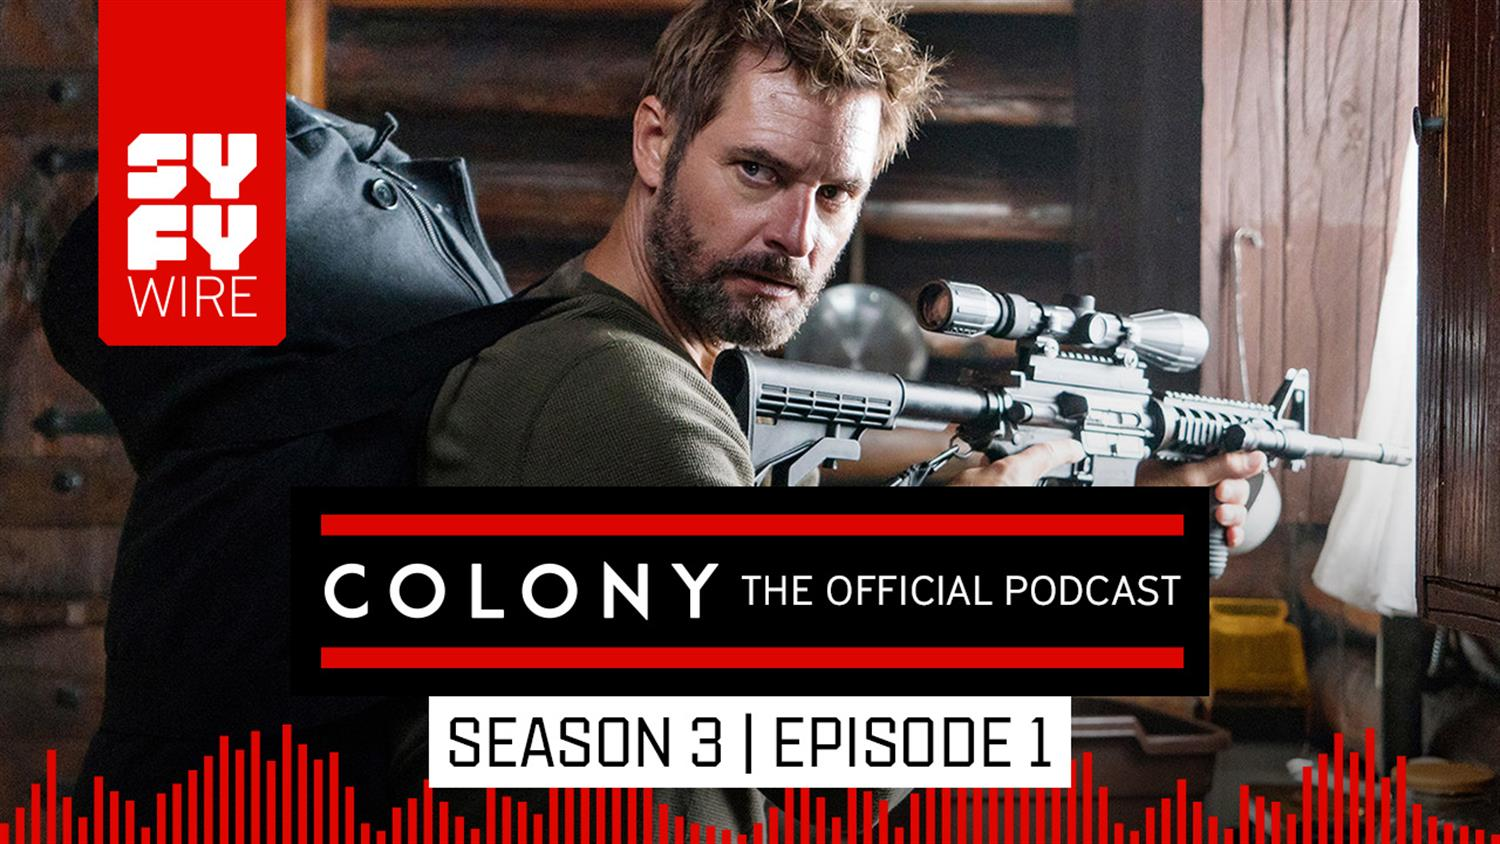 Colony The Official Podcast: Season 3, Episode 1